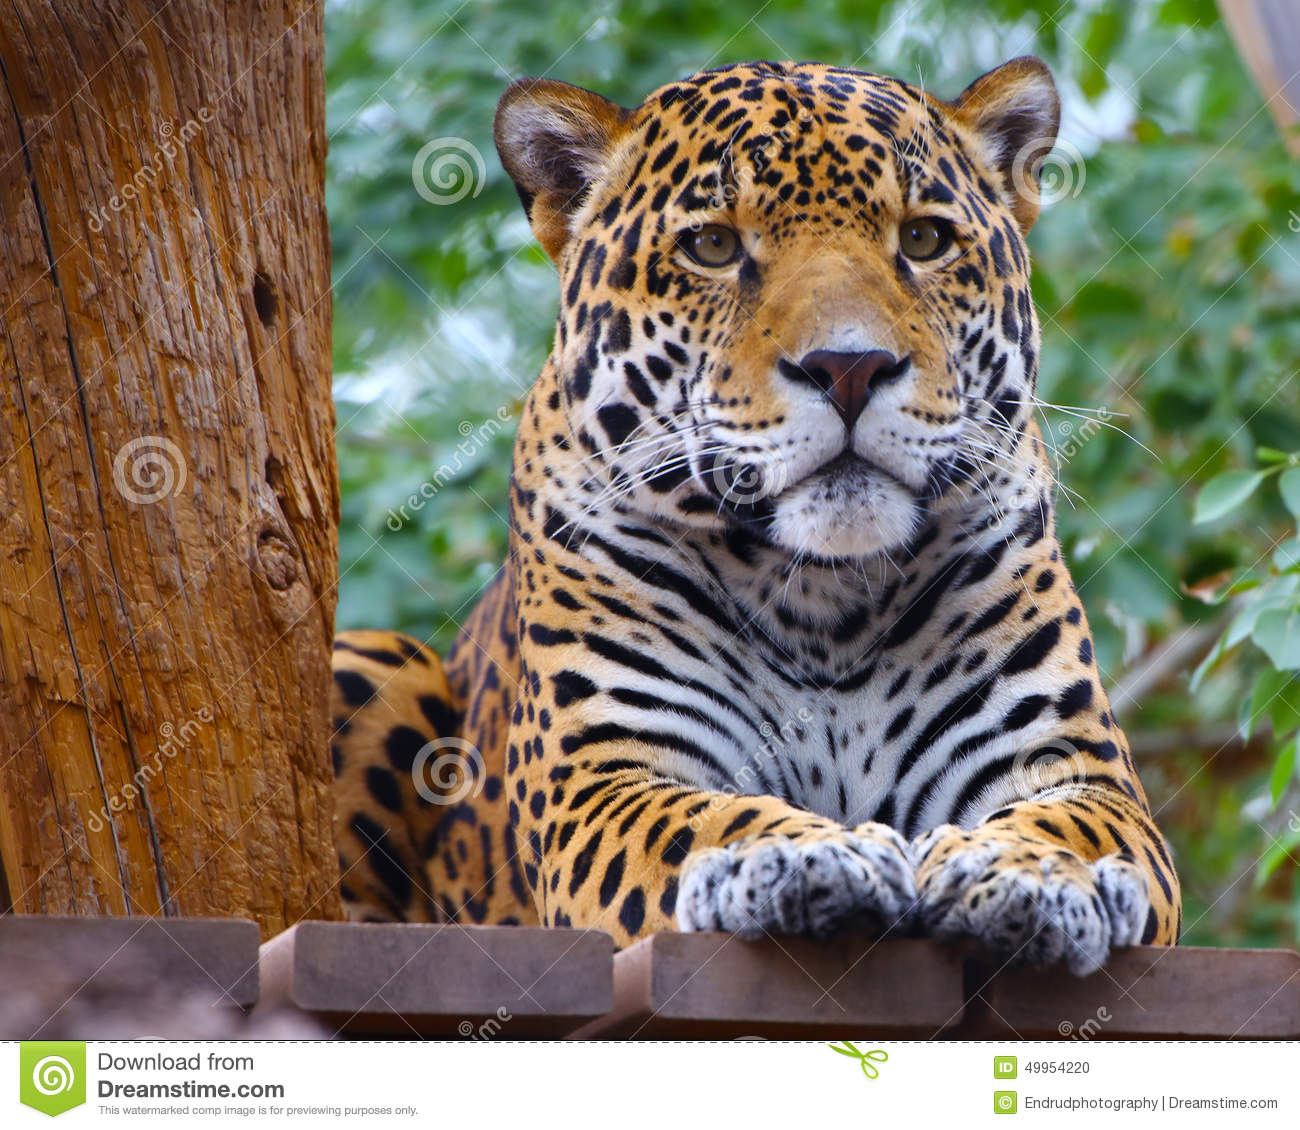 Roaring Jaguar: Jaguar Stock Photo. Image Of Staring, Tame, Deadly, Face